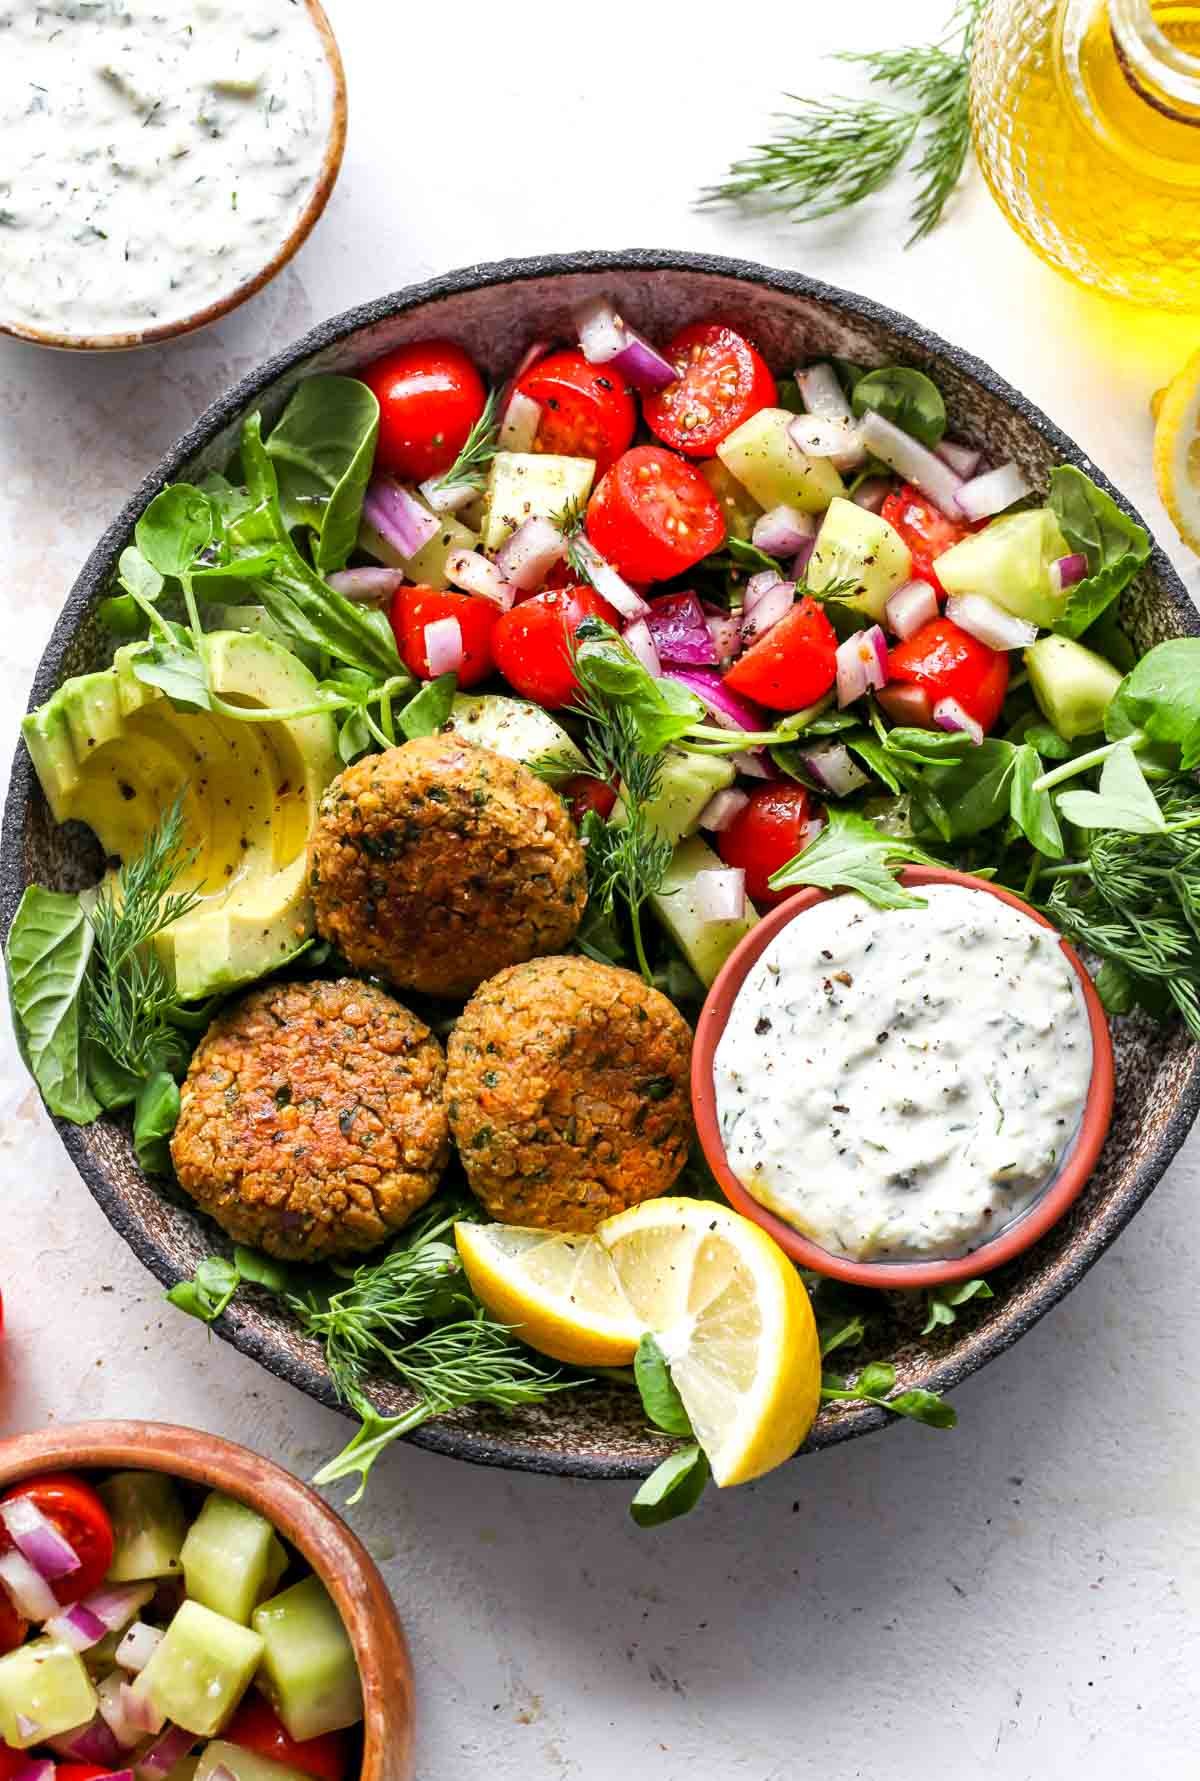 Chickpea falafel styled in a bowl with arugula, cashew tzatziki, and tomato-cucumber salad